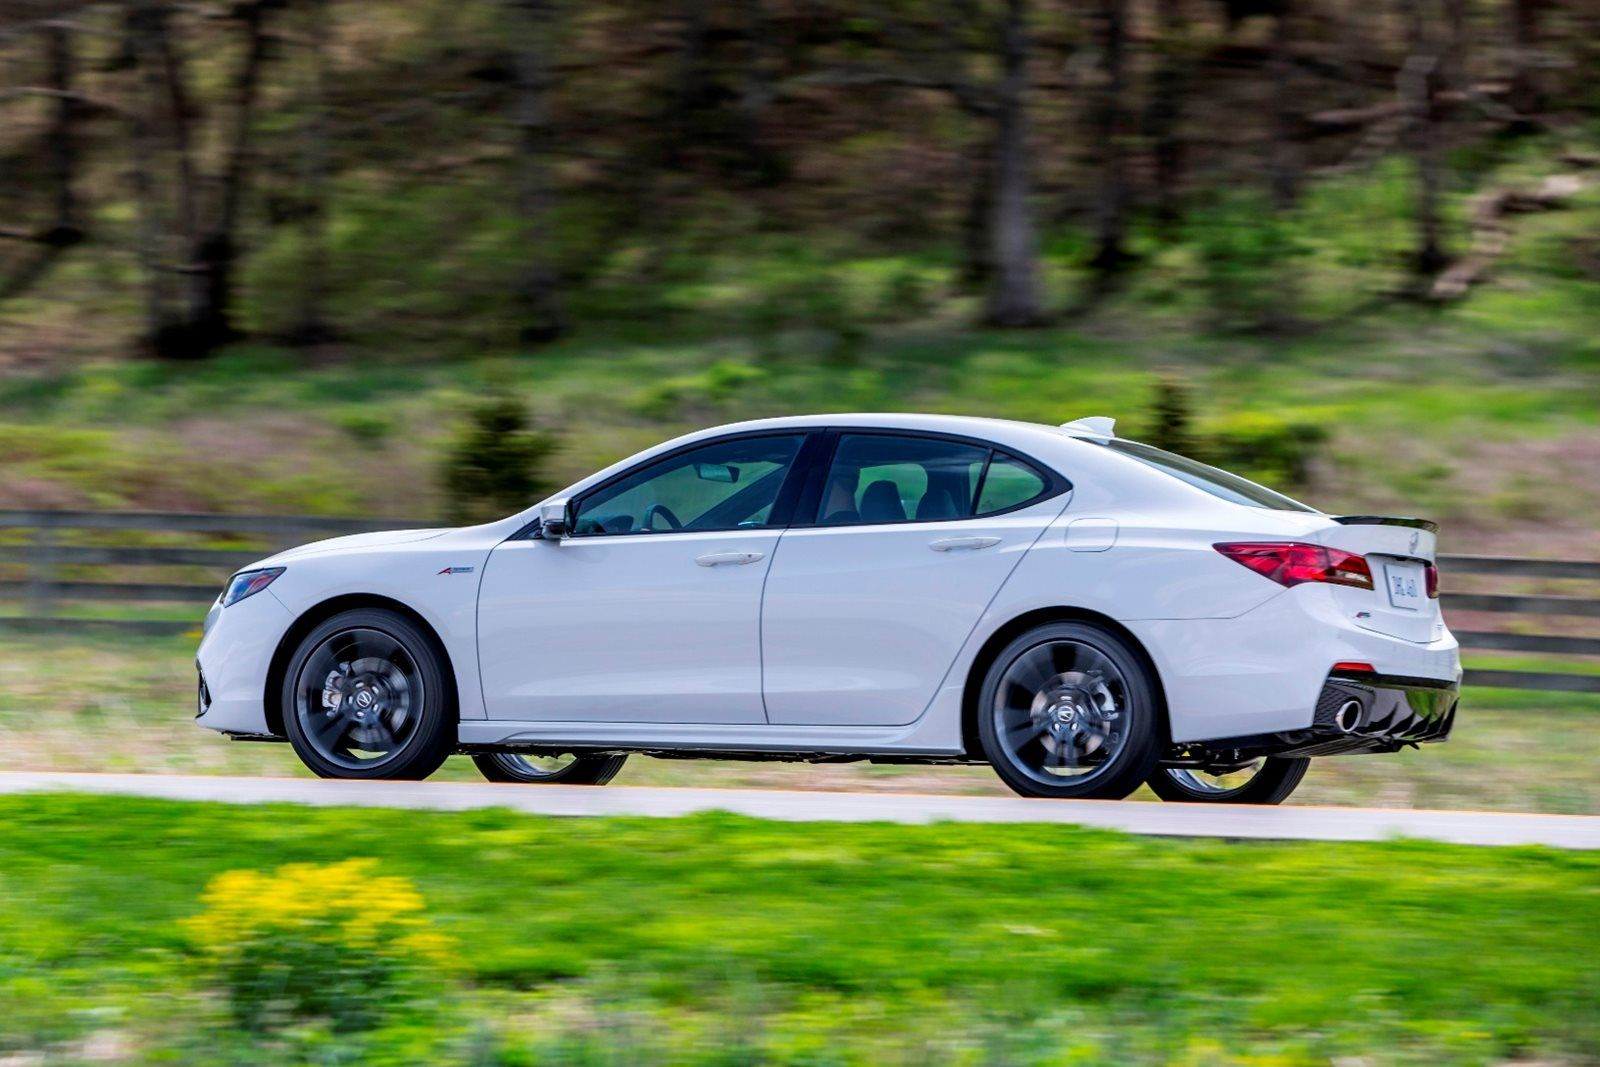 White Acura TLX side view